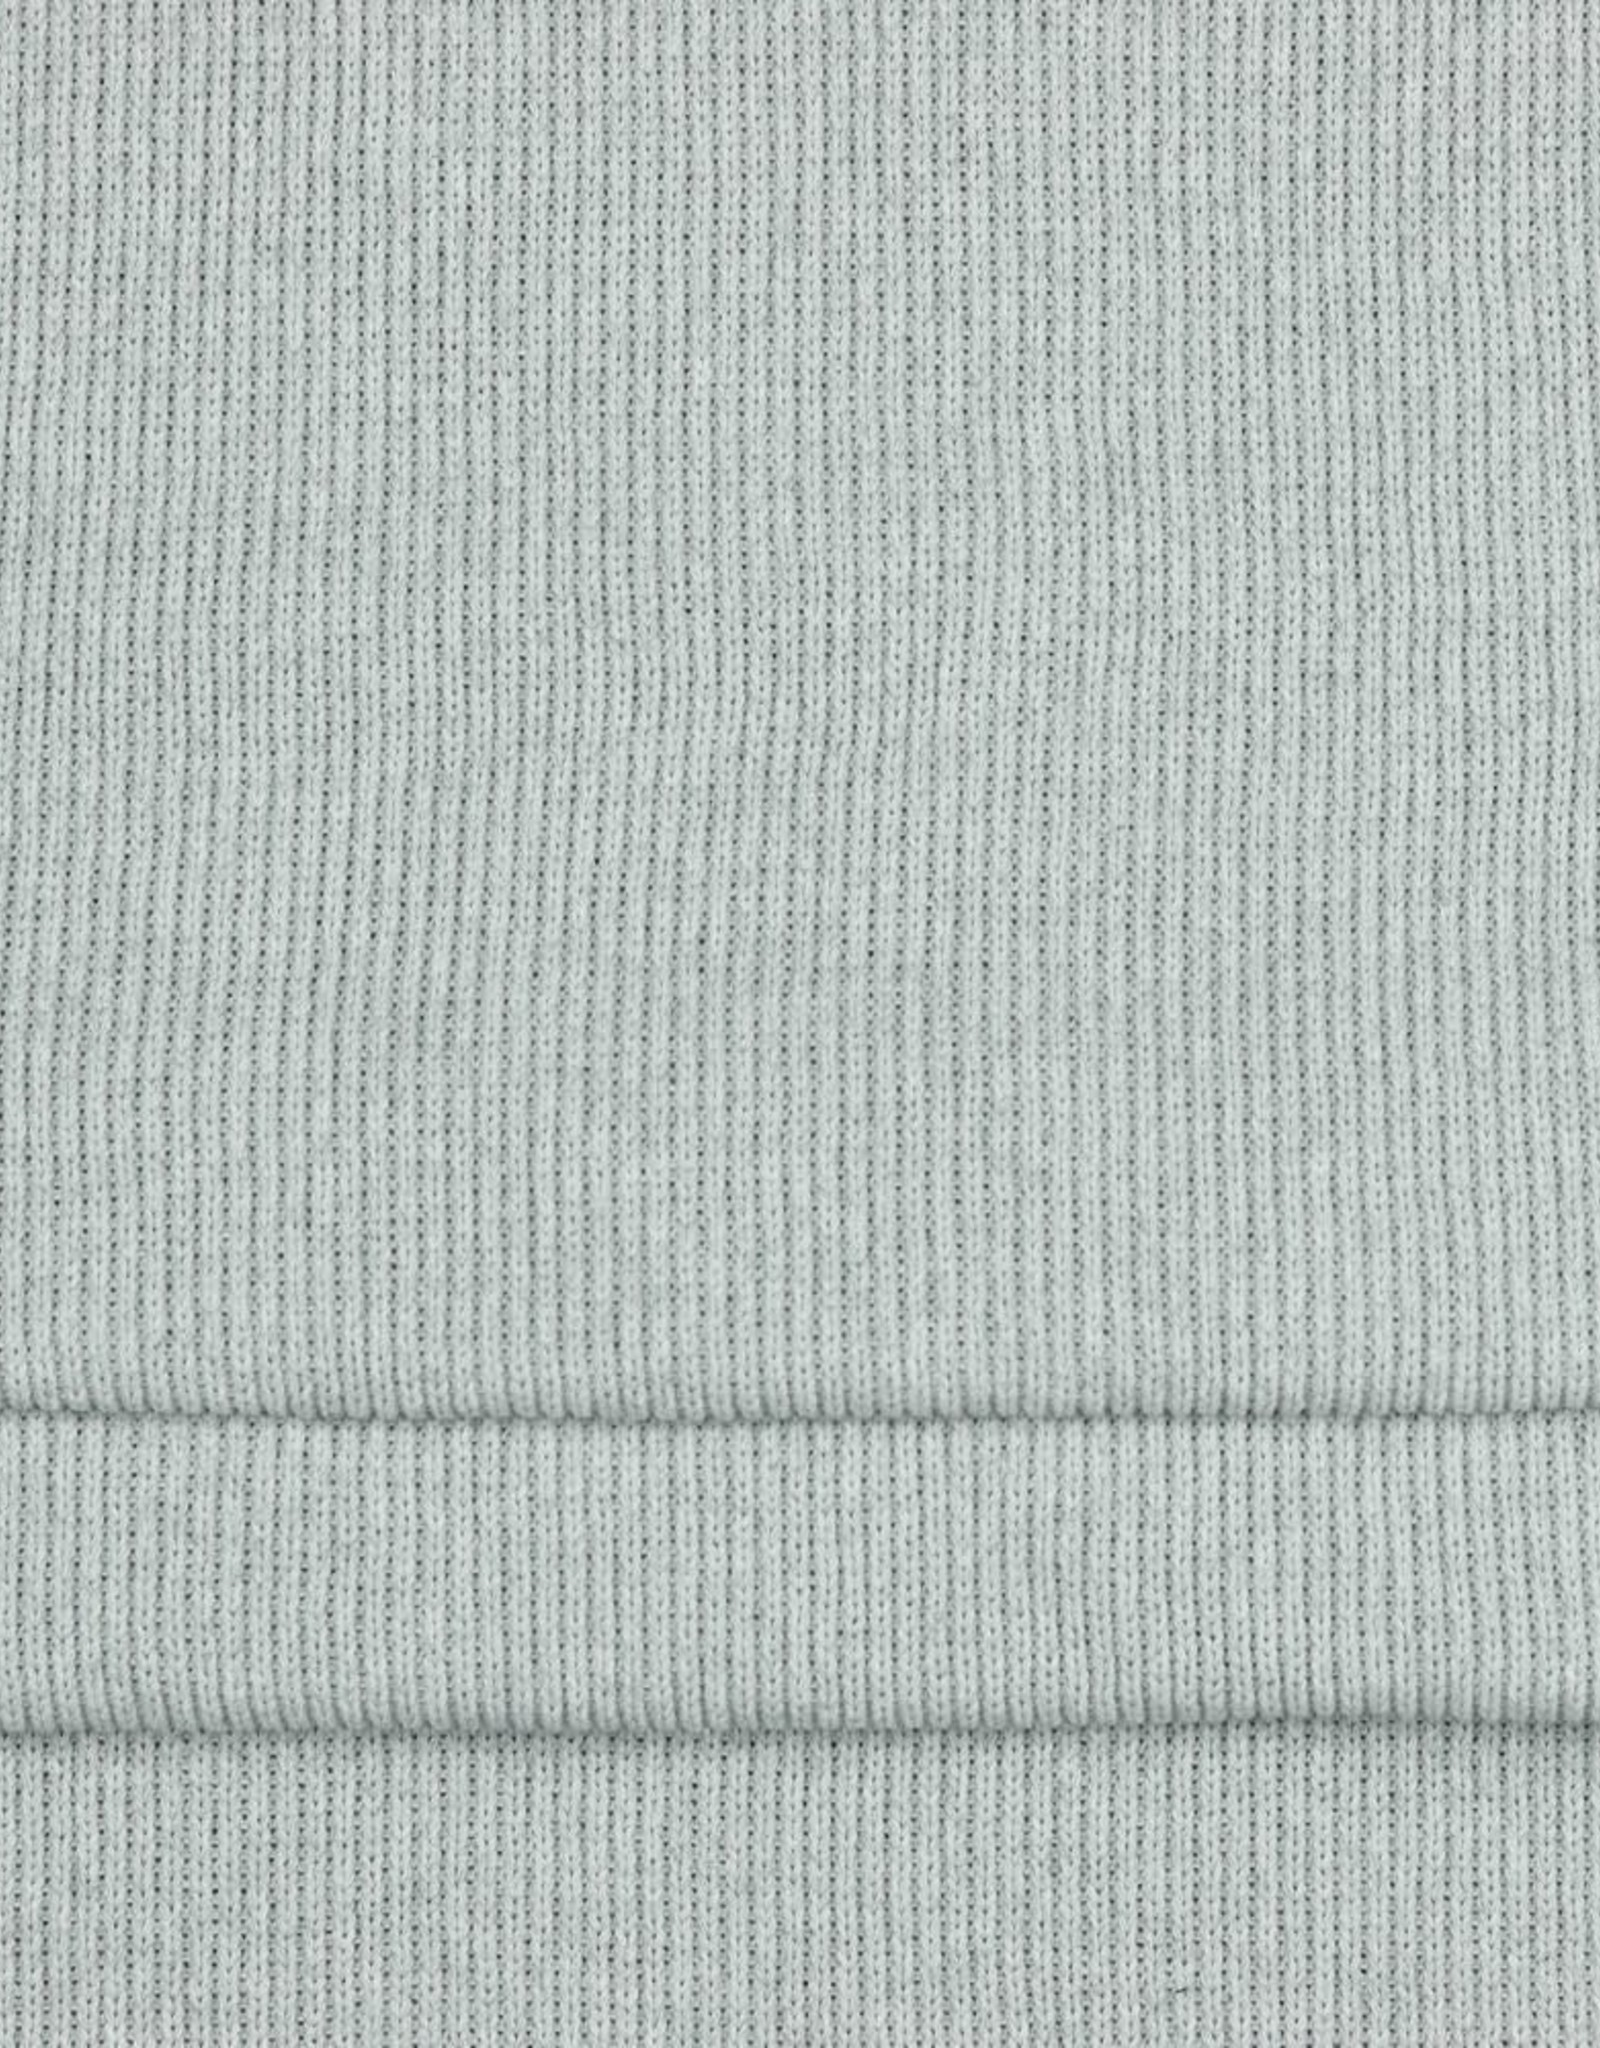 Recycled cotton knit licht grijs